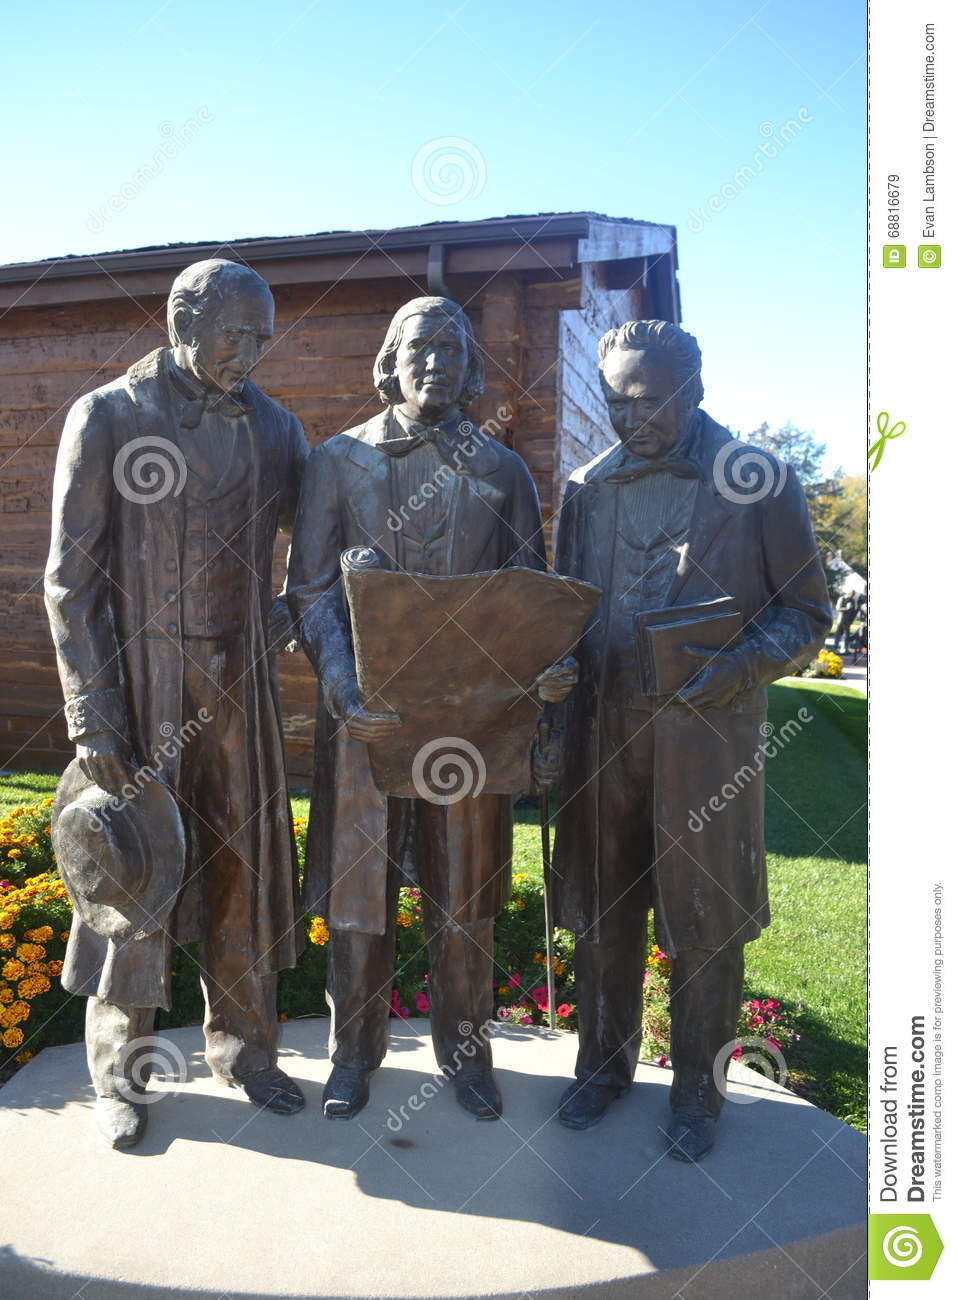 Staty av Heber C Kimball Brigham Young och Willard Richards